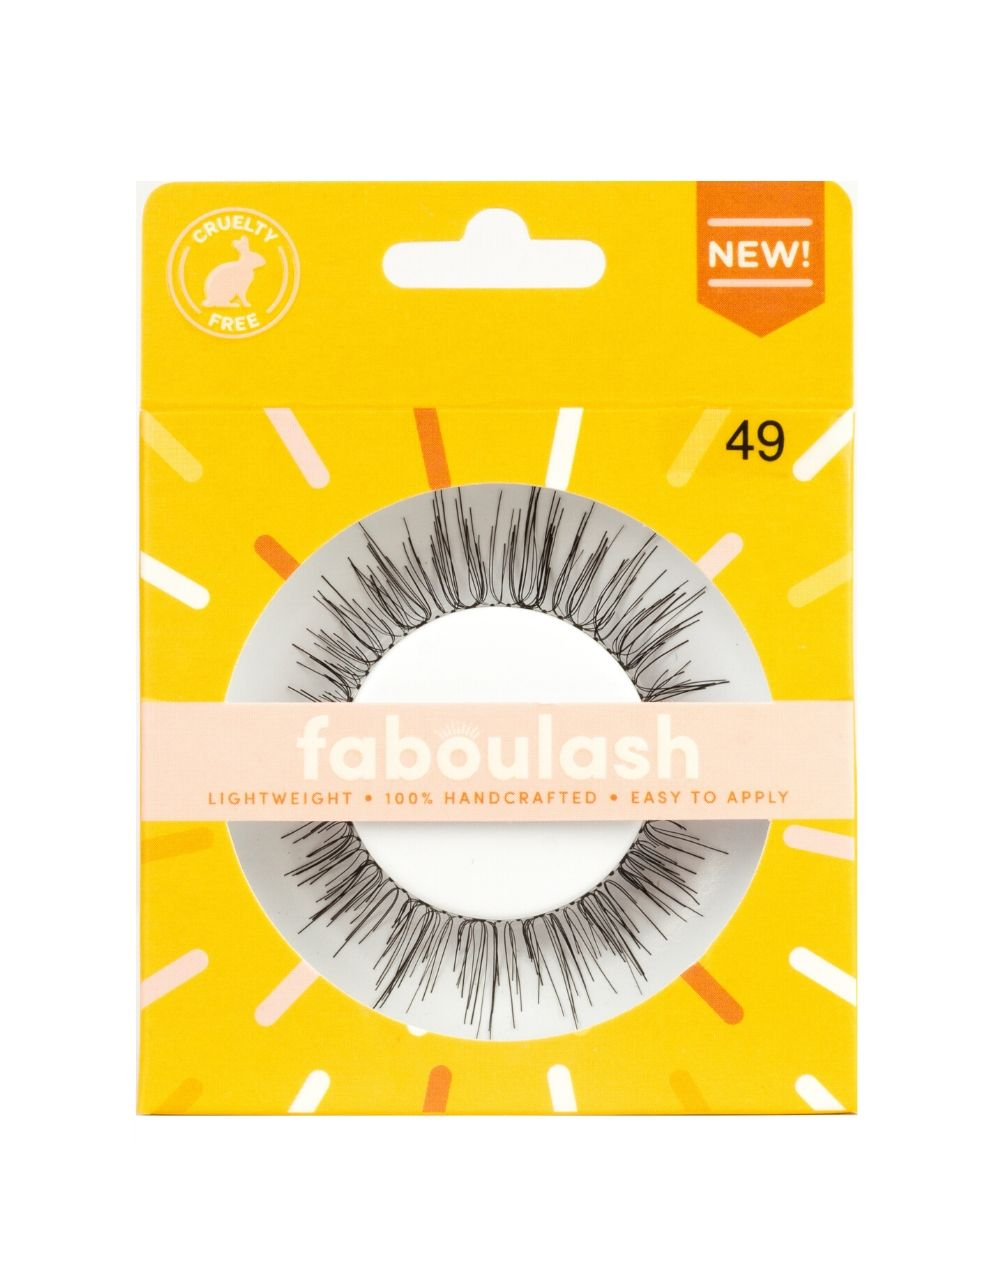 Faboulash 49 by Faboulash